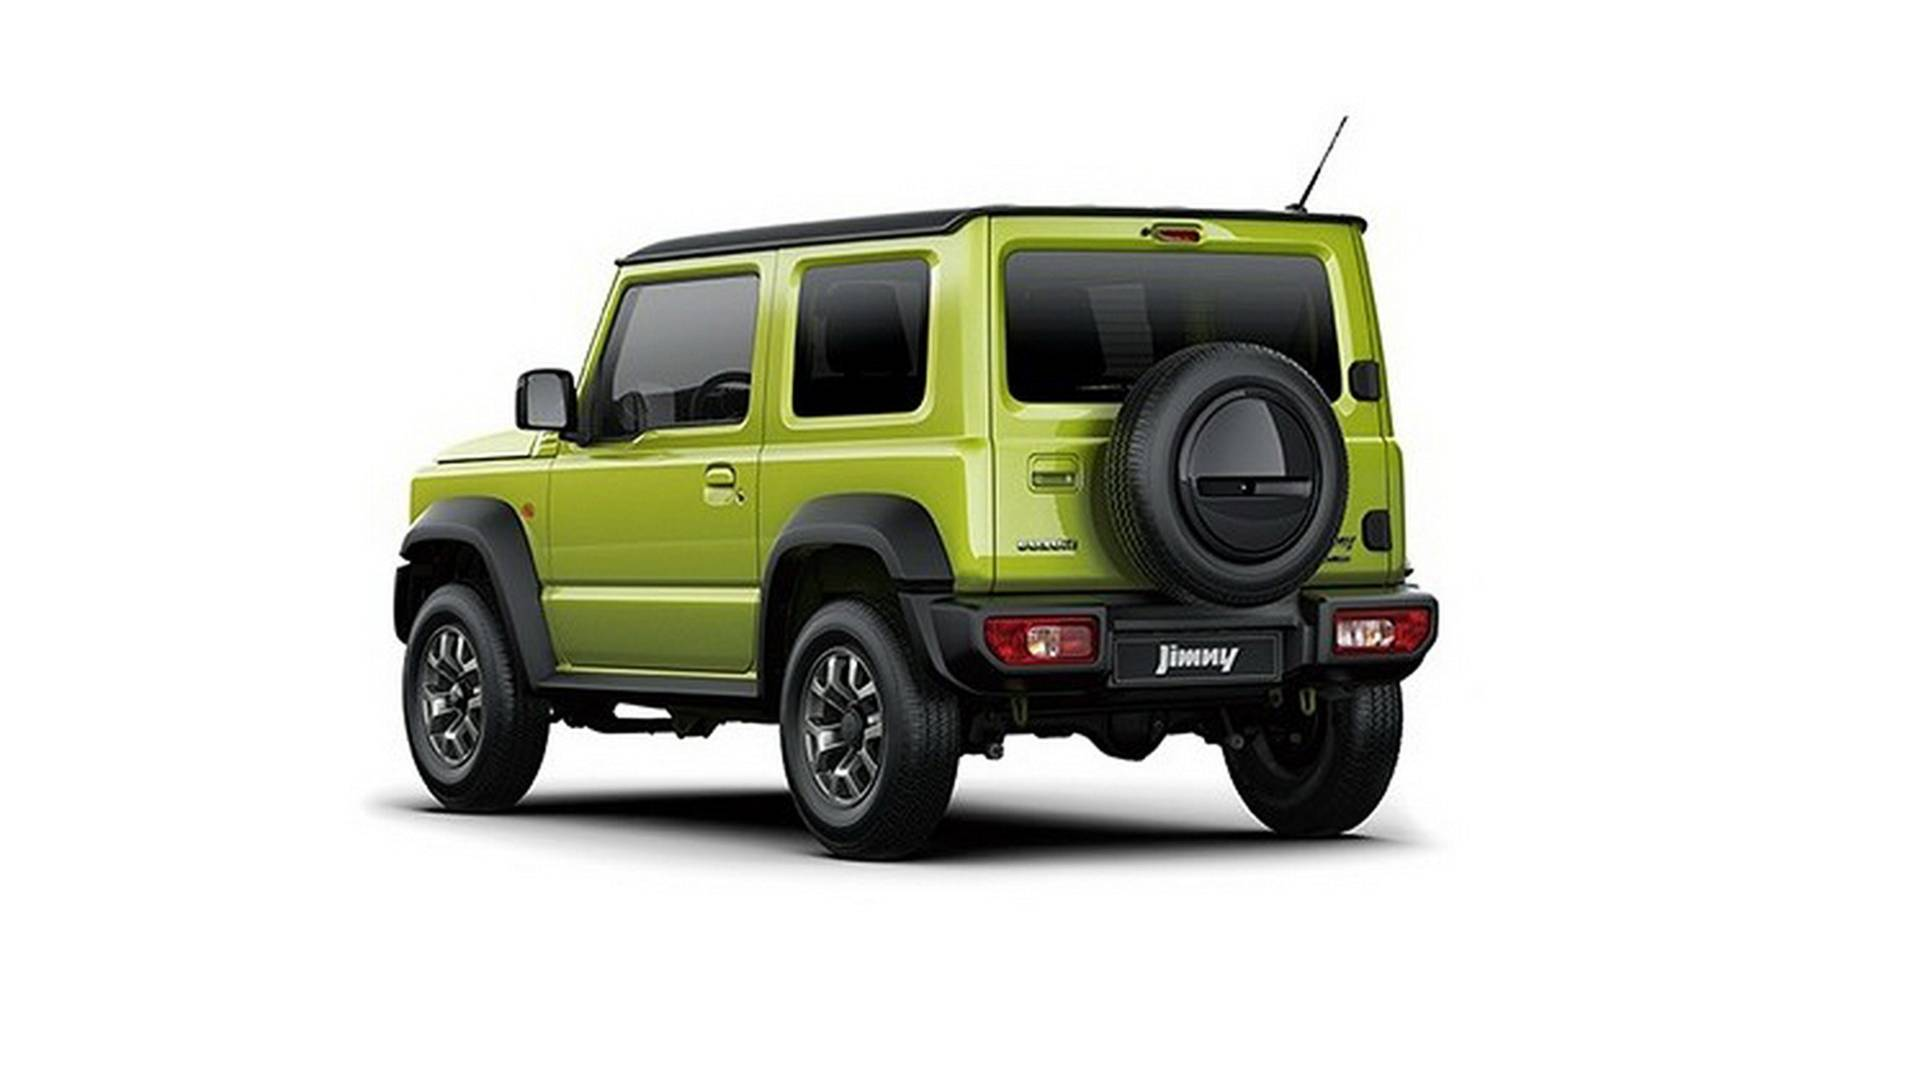 Maruti Suzuki Jimny Interior >> 2018 Suzuki Jimny Convertible Masterfully Rendered - autoevolution